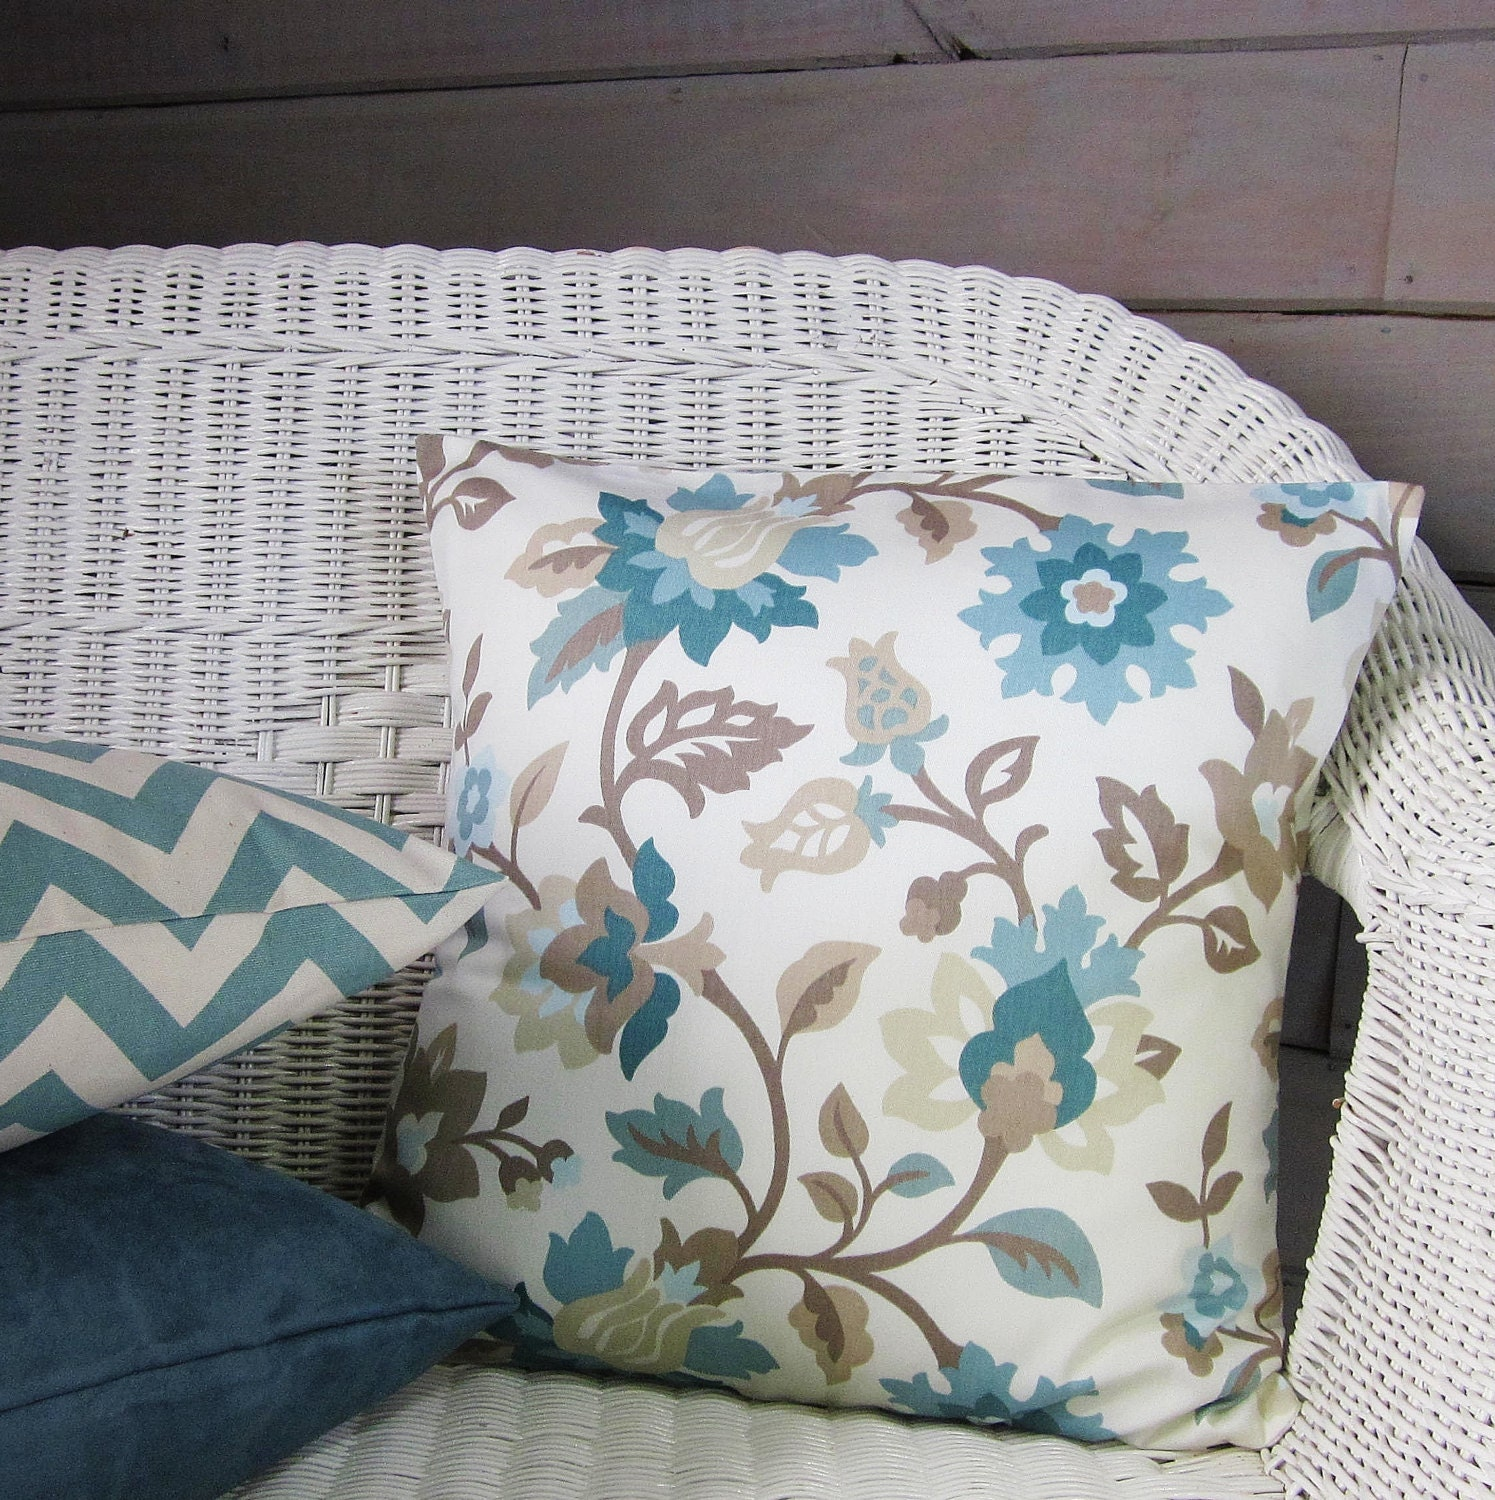 Best Teal Aqua Seafoam Pillow Cover Taupe Floral Home Decor This Month